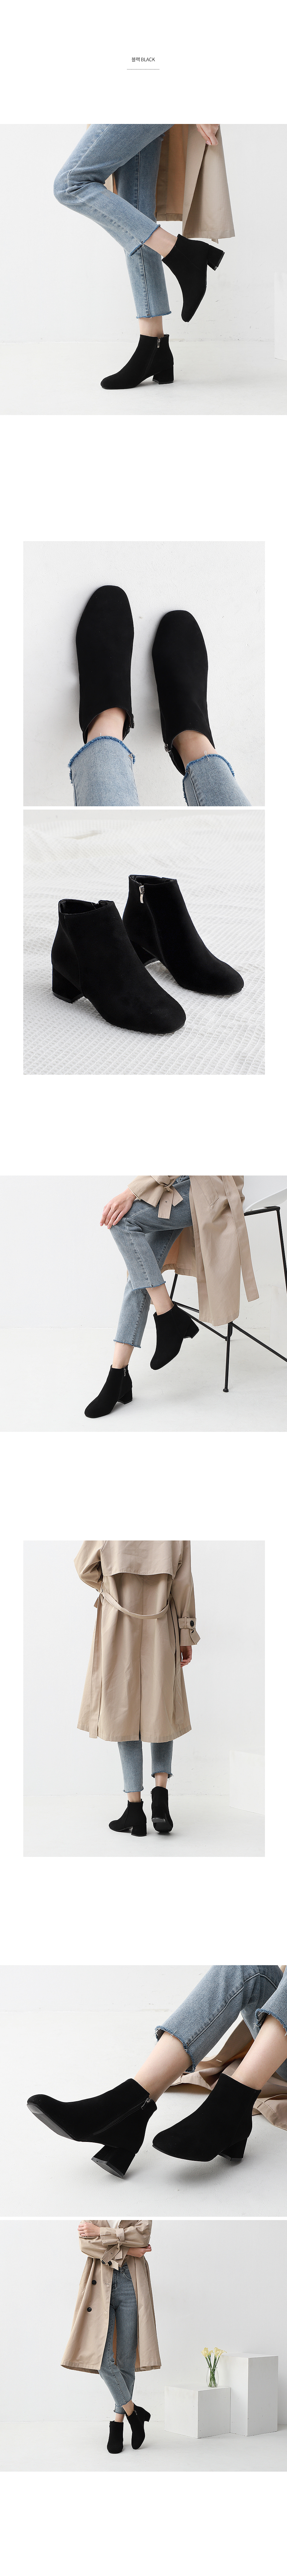 Isshu round nose suede ankle boots 9014 ♡ second edition ♡